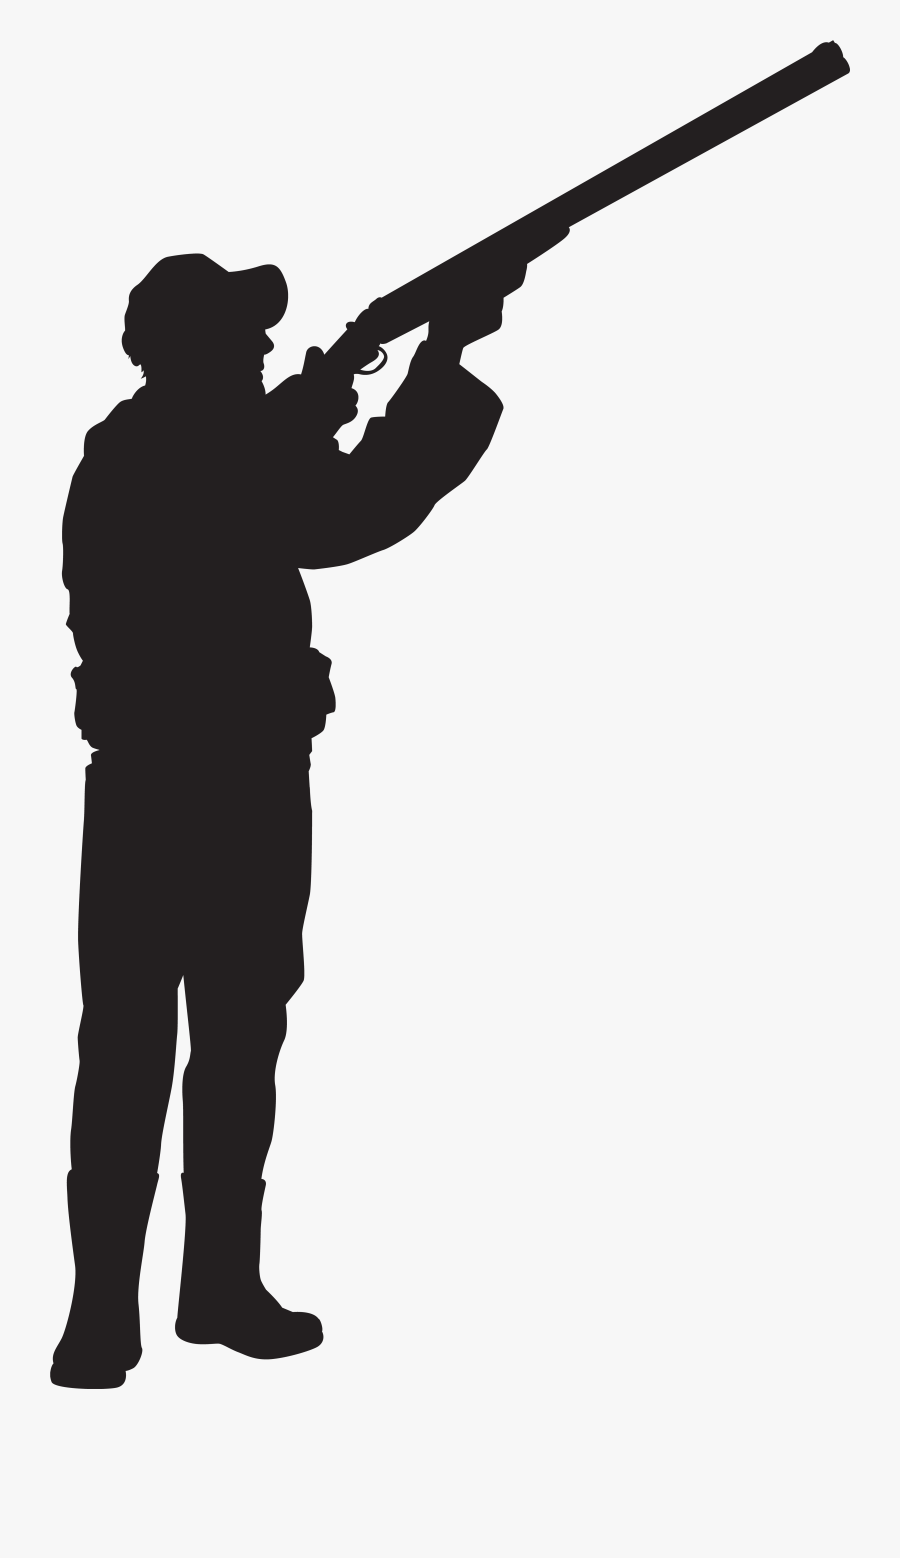 Silhouette Clip Art Hunter - Clay Pigeon Shooting Silhouette, Transparent Clipart